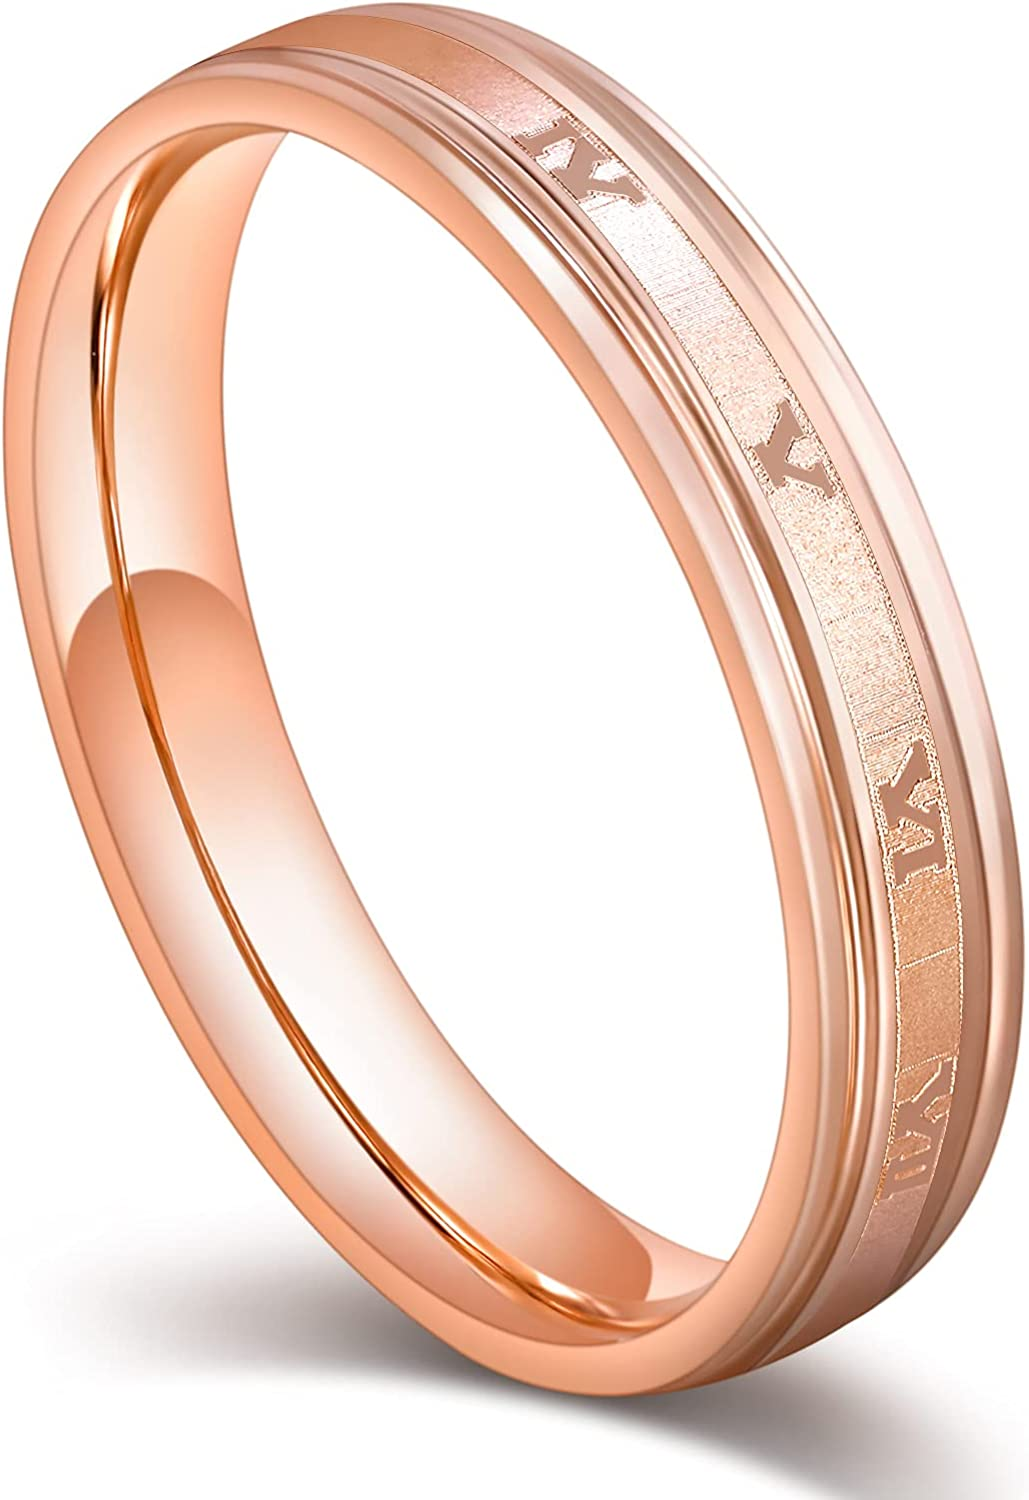 Greenpod 4mm Stainless Steel Rings for Women Men Roman Numerals Ring Rose Gold Brushed Center Stepped Edge Wedding Band Comfort Fit Size 5-11